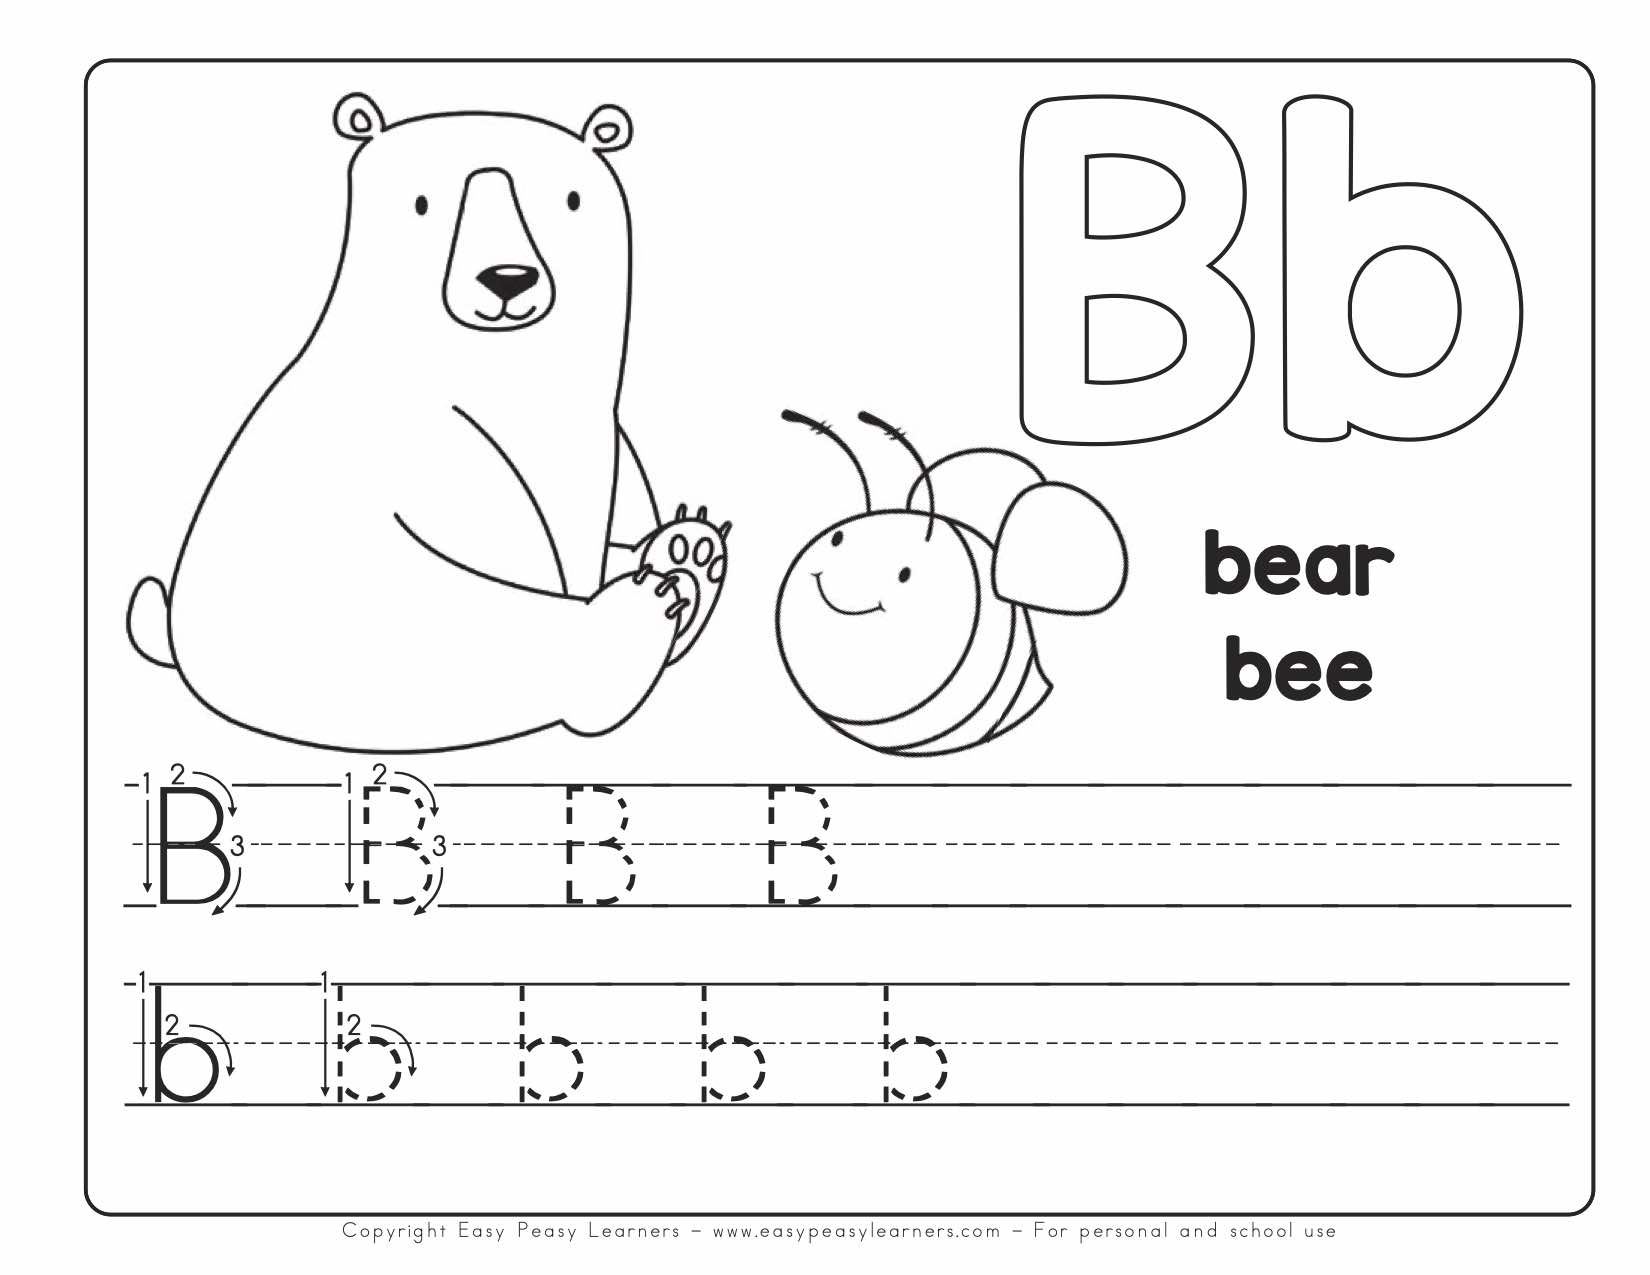 hight resolution of Free Printable Alphabet Book - Alphabet Worksheets for Pre-K and K - Easy  Peasy Learners